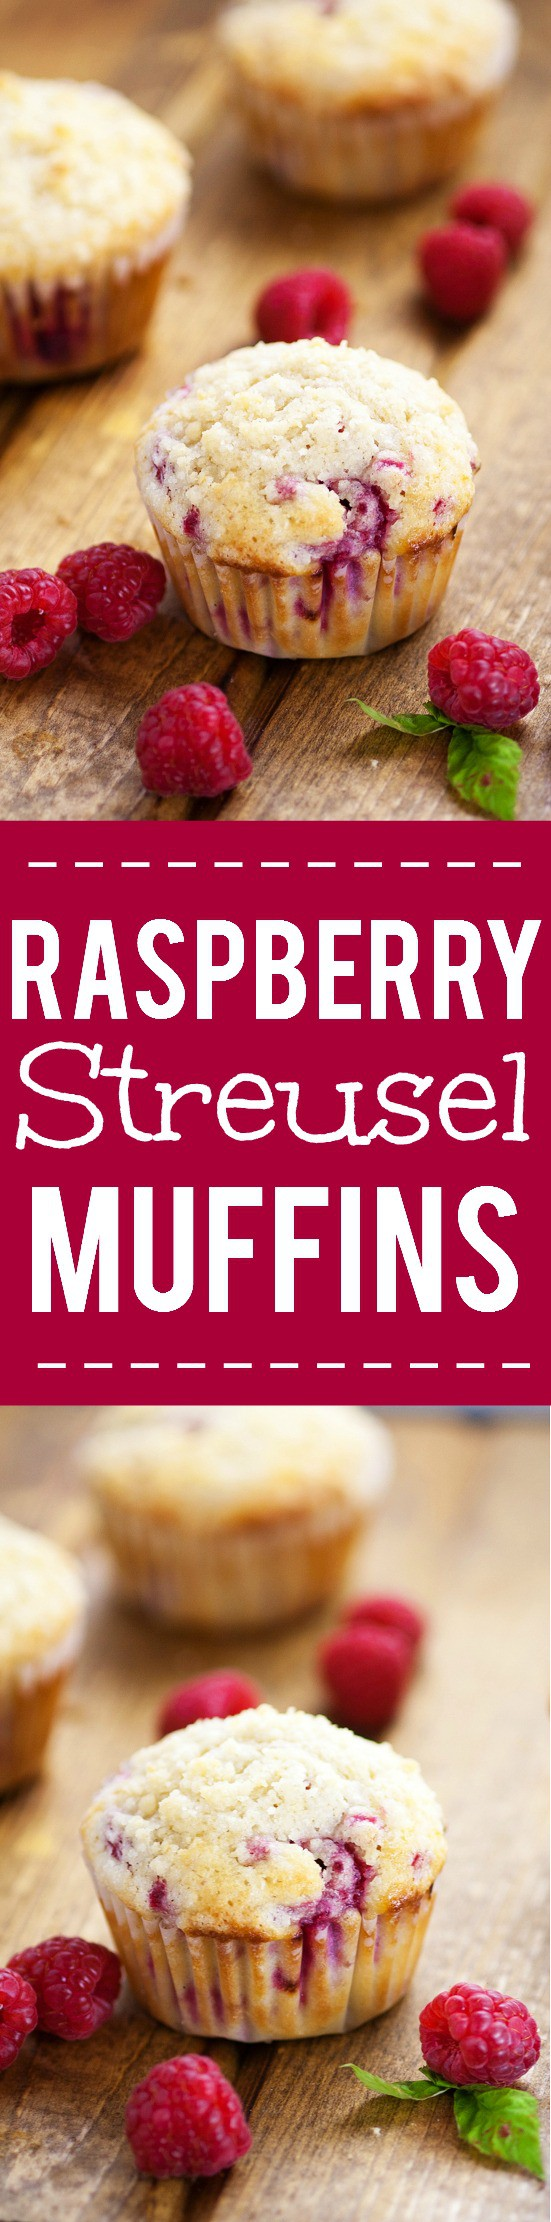 Raspberry Streusel Muffins | The Gracious Wife